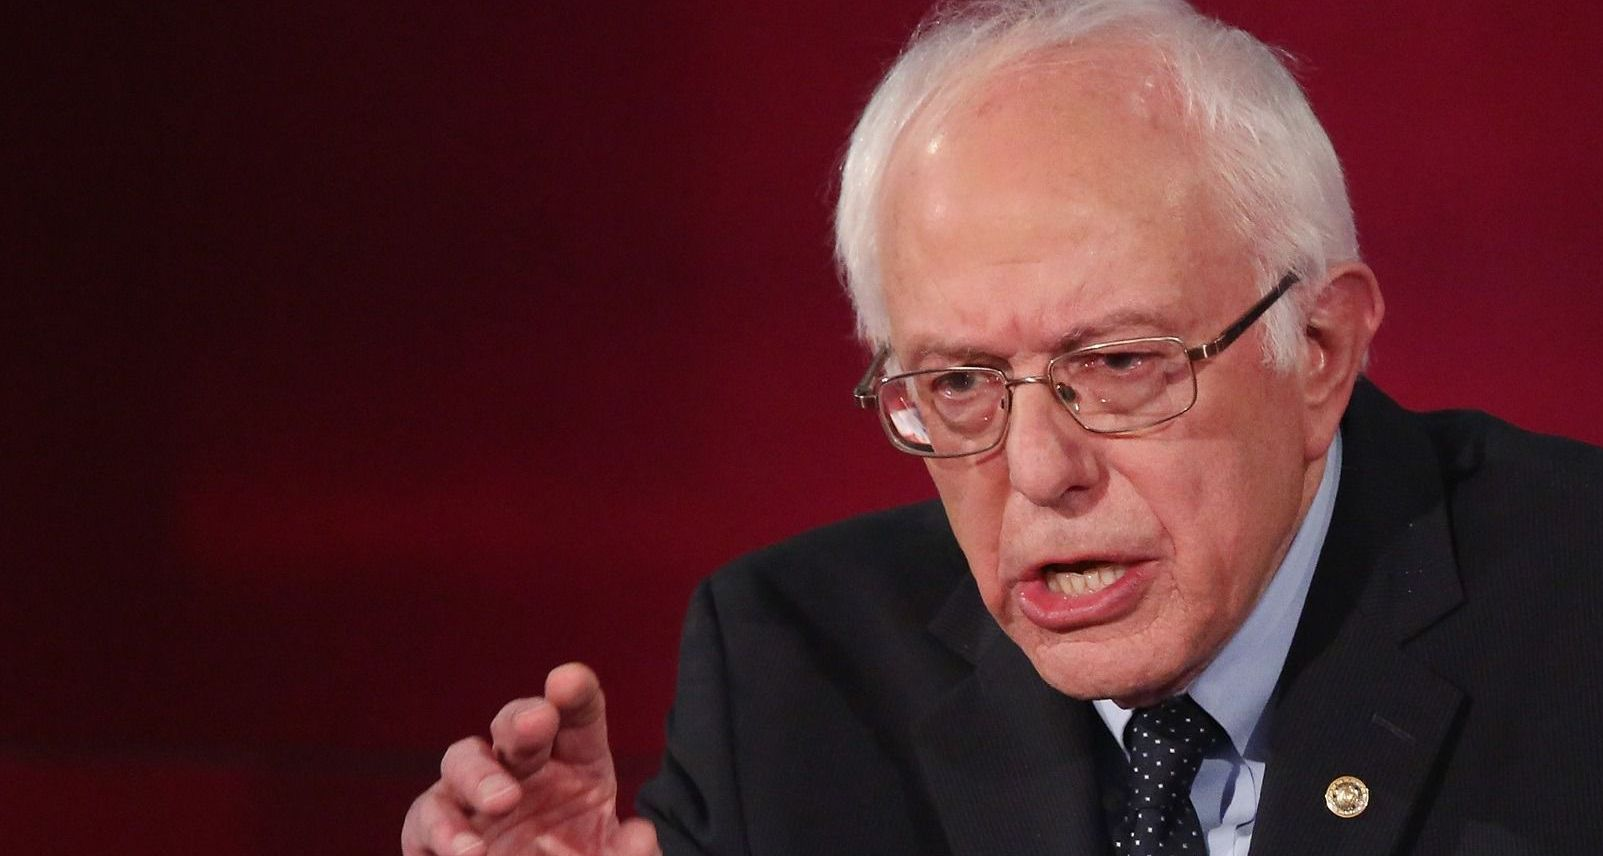 Identity politics? Bernie Sanders has some thoughts.